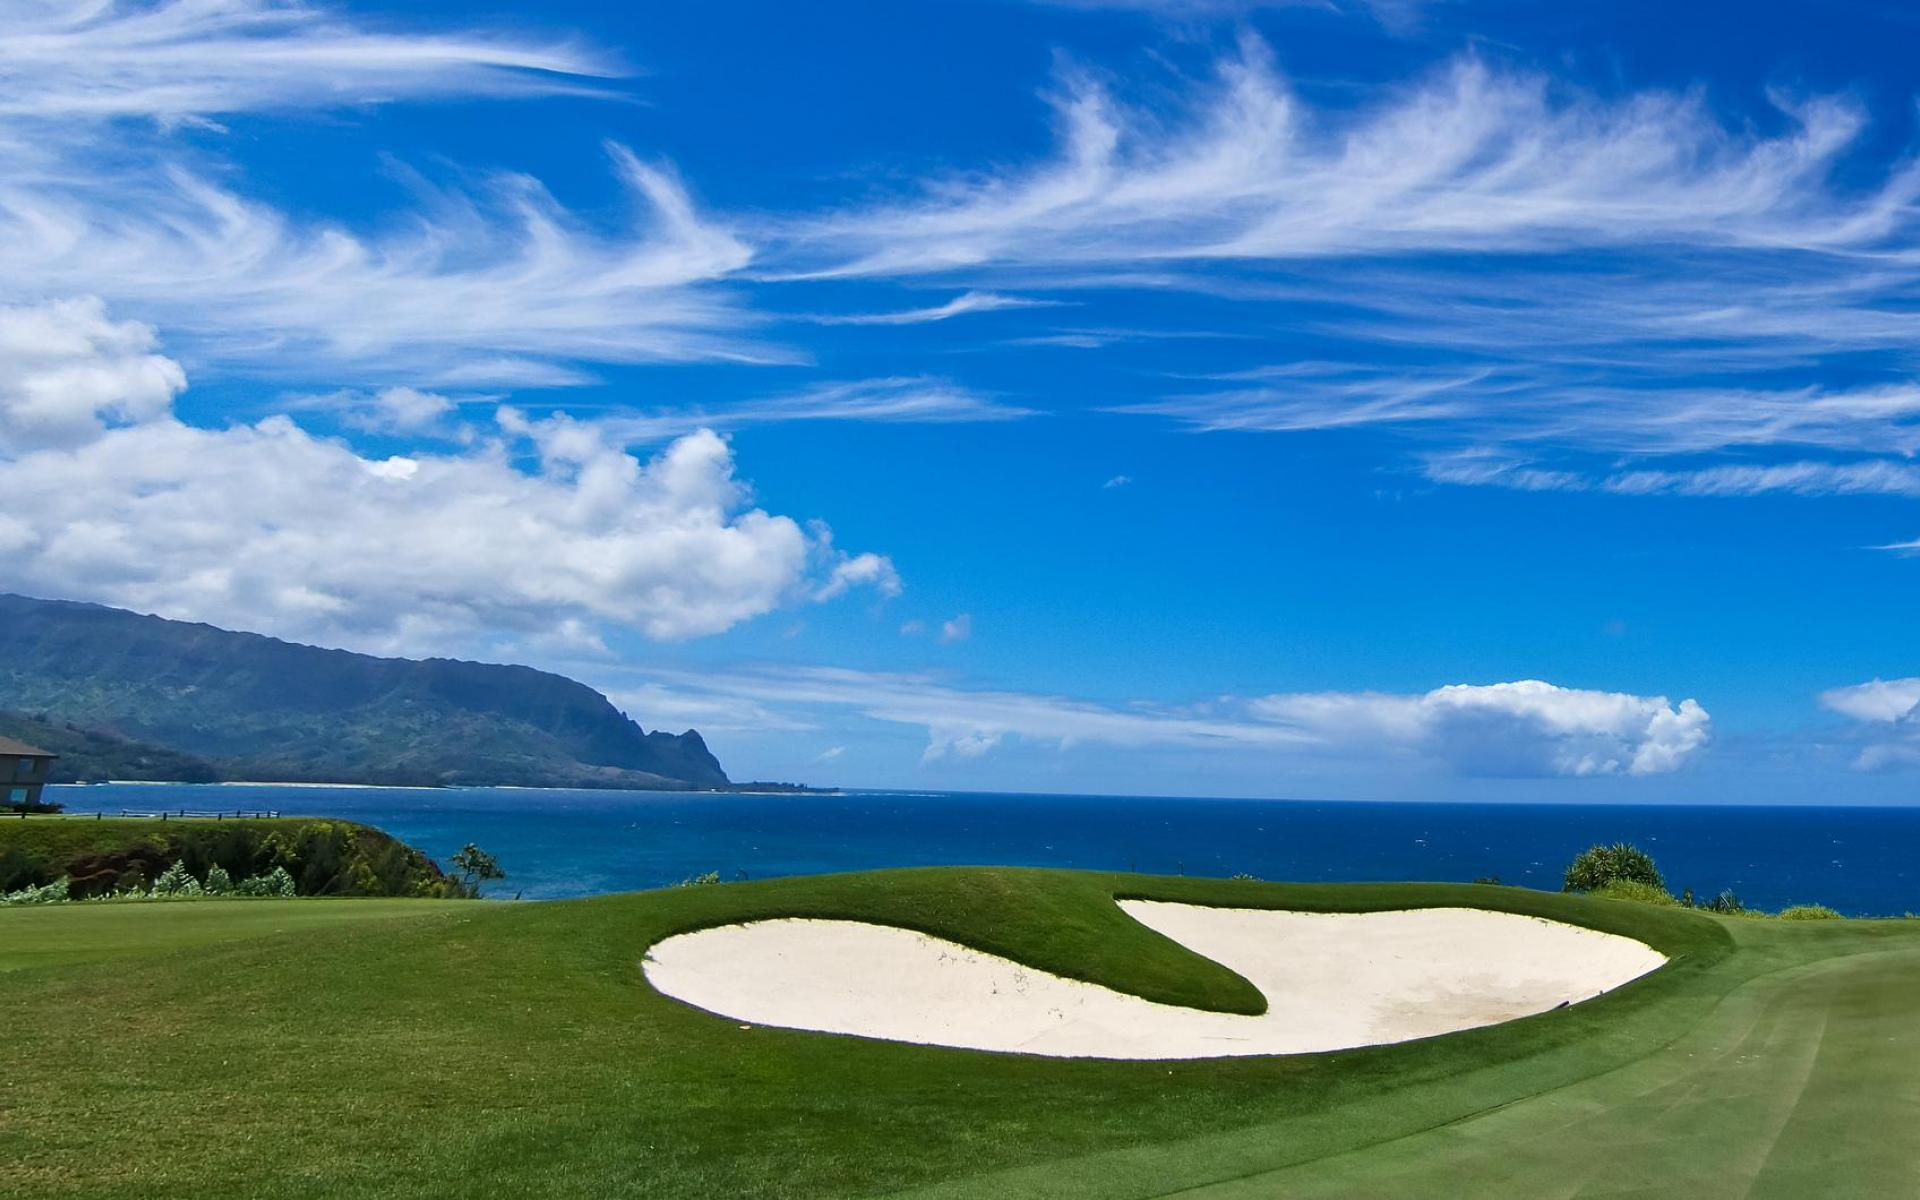 1440x900 High Res Wallpaper: Hi Res Golf Course Wallpapers